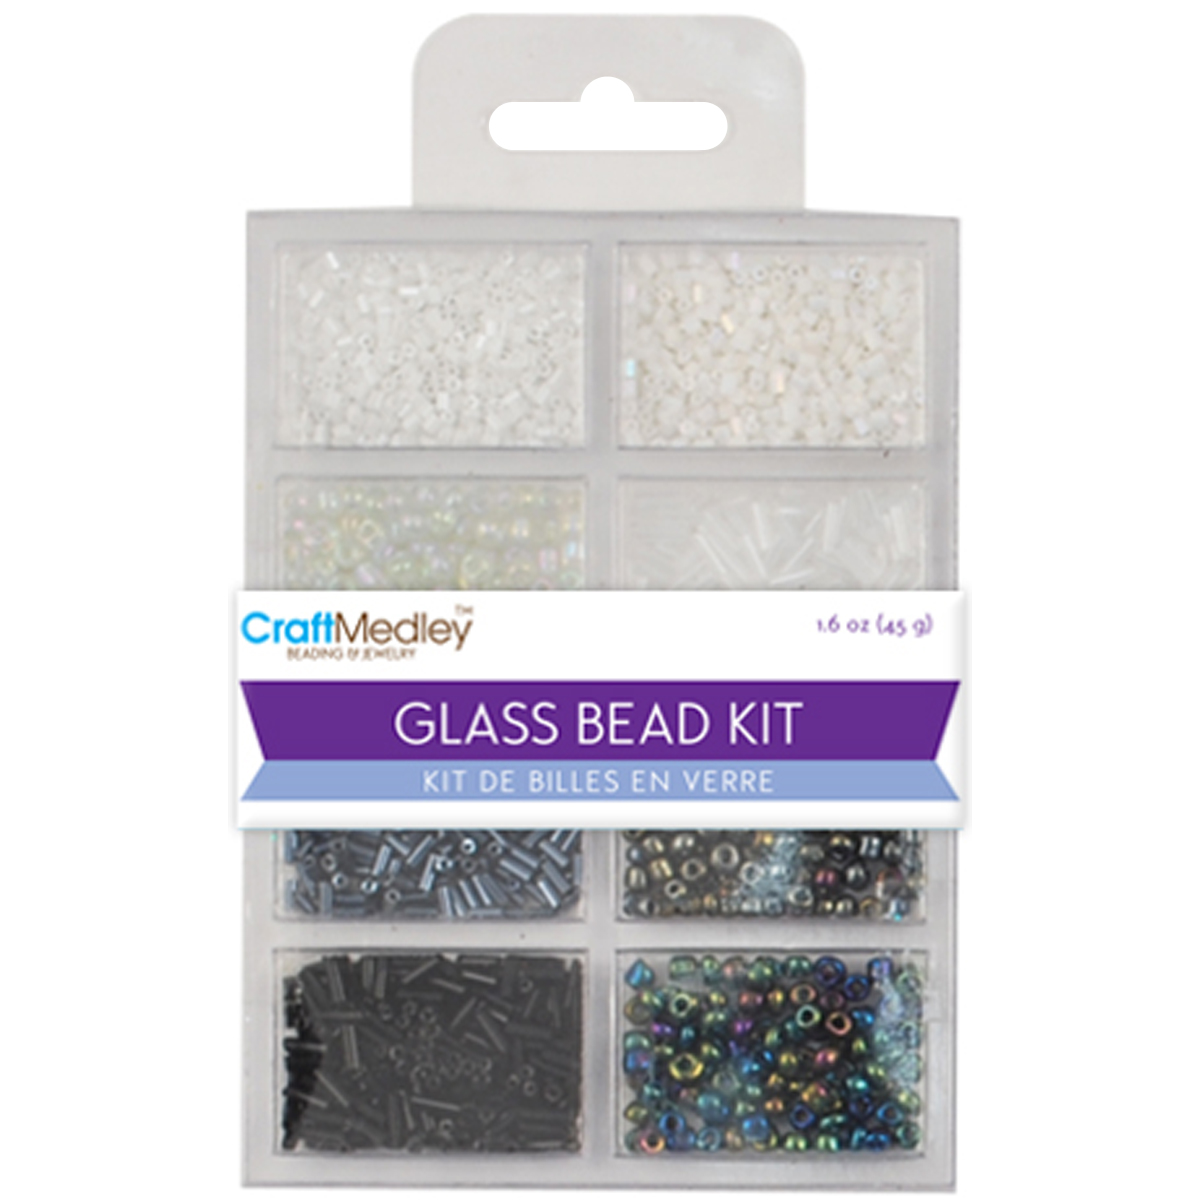 Multicraft Imports Glass Bead Kit, Black and White Classic, 45 gm Per Pack Multi-Colored